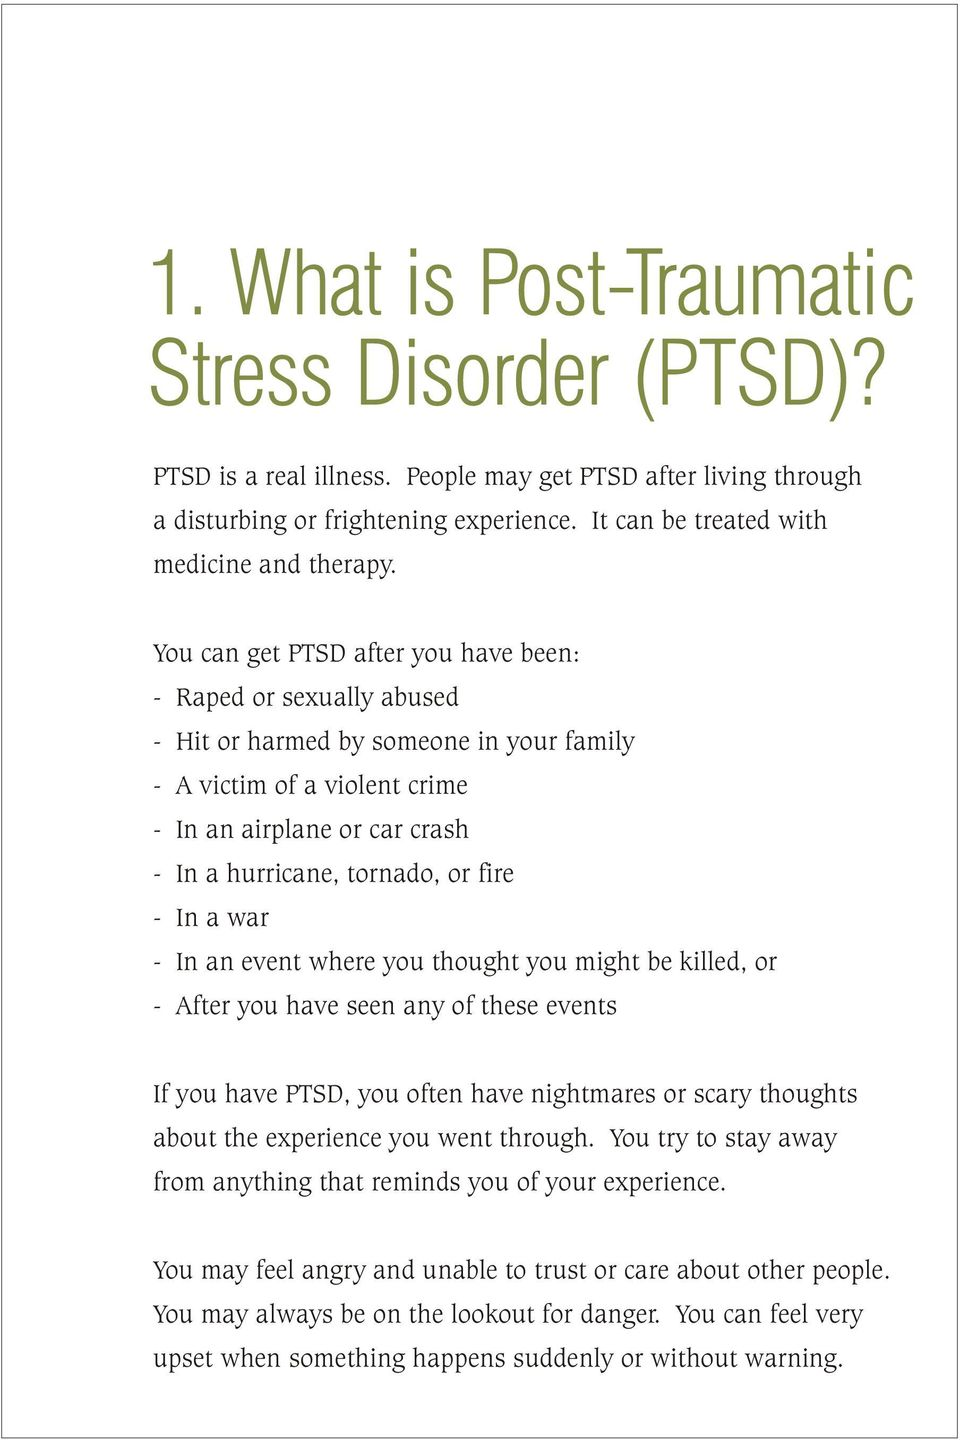 fire - In a war - In an event where you thought you might be killed, or - After you have seen any of these events If you have PTSD, you often have nightmares or scary thoughts about the experience